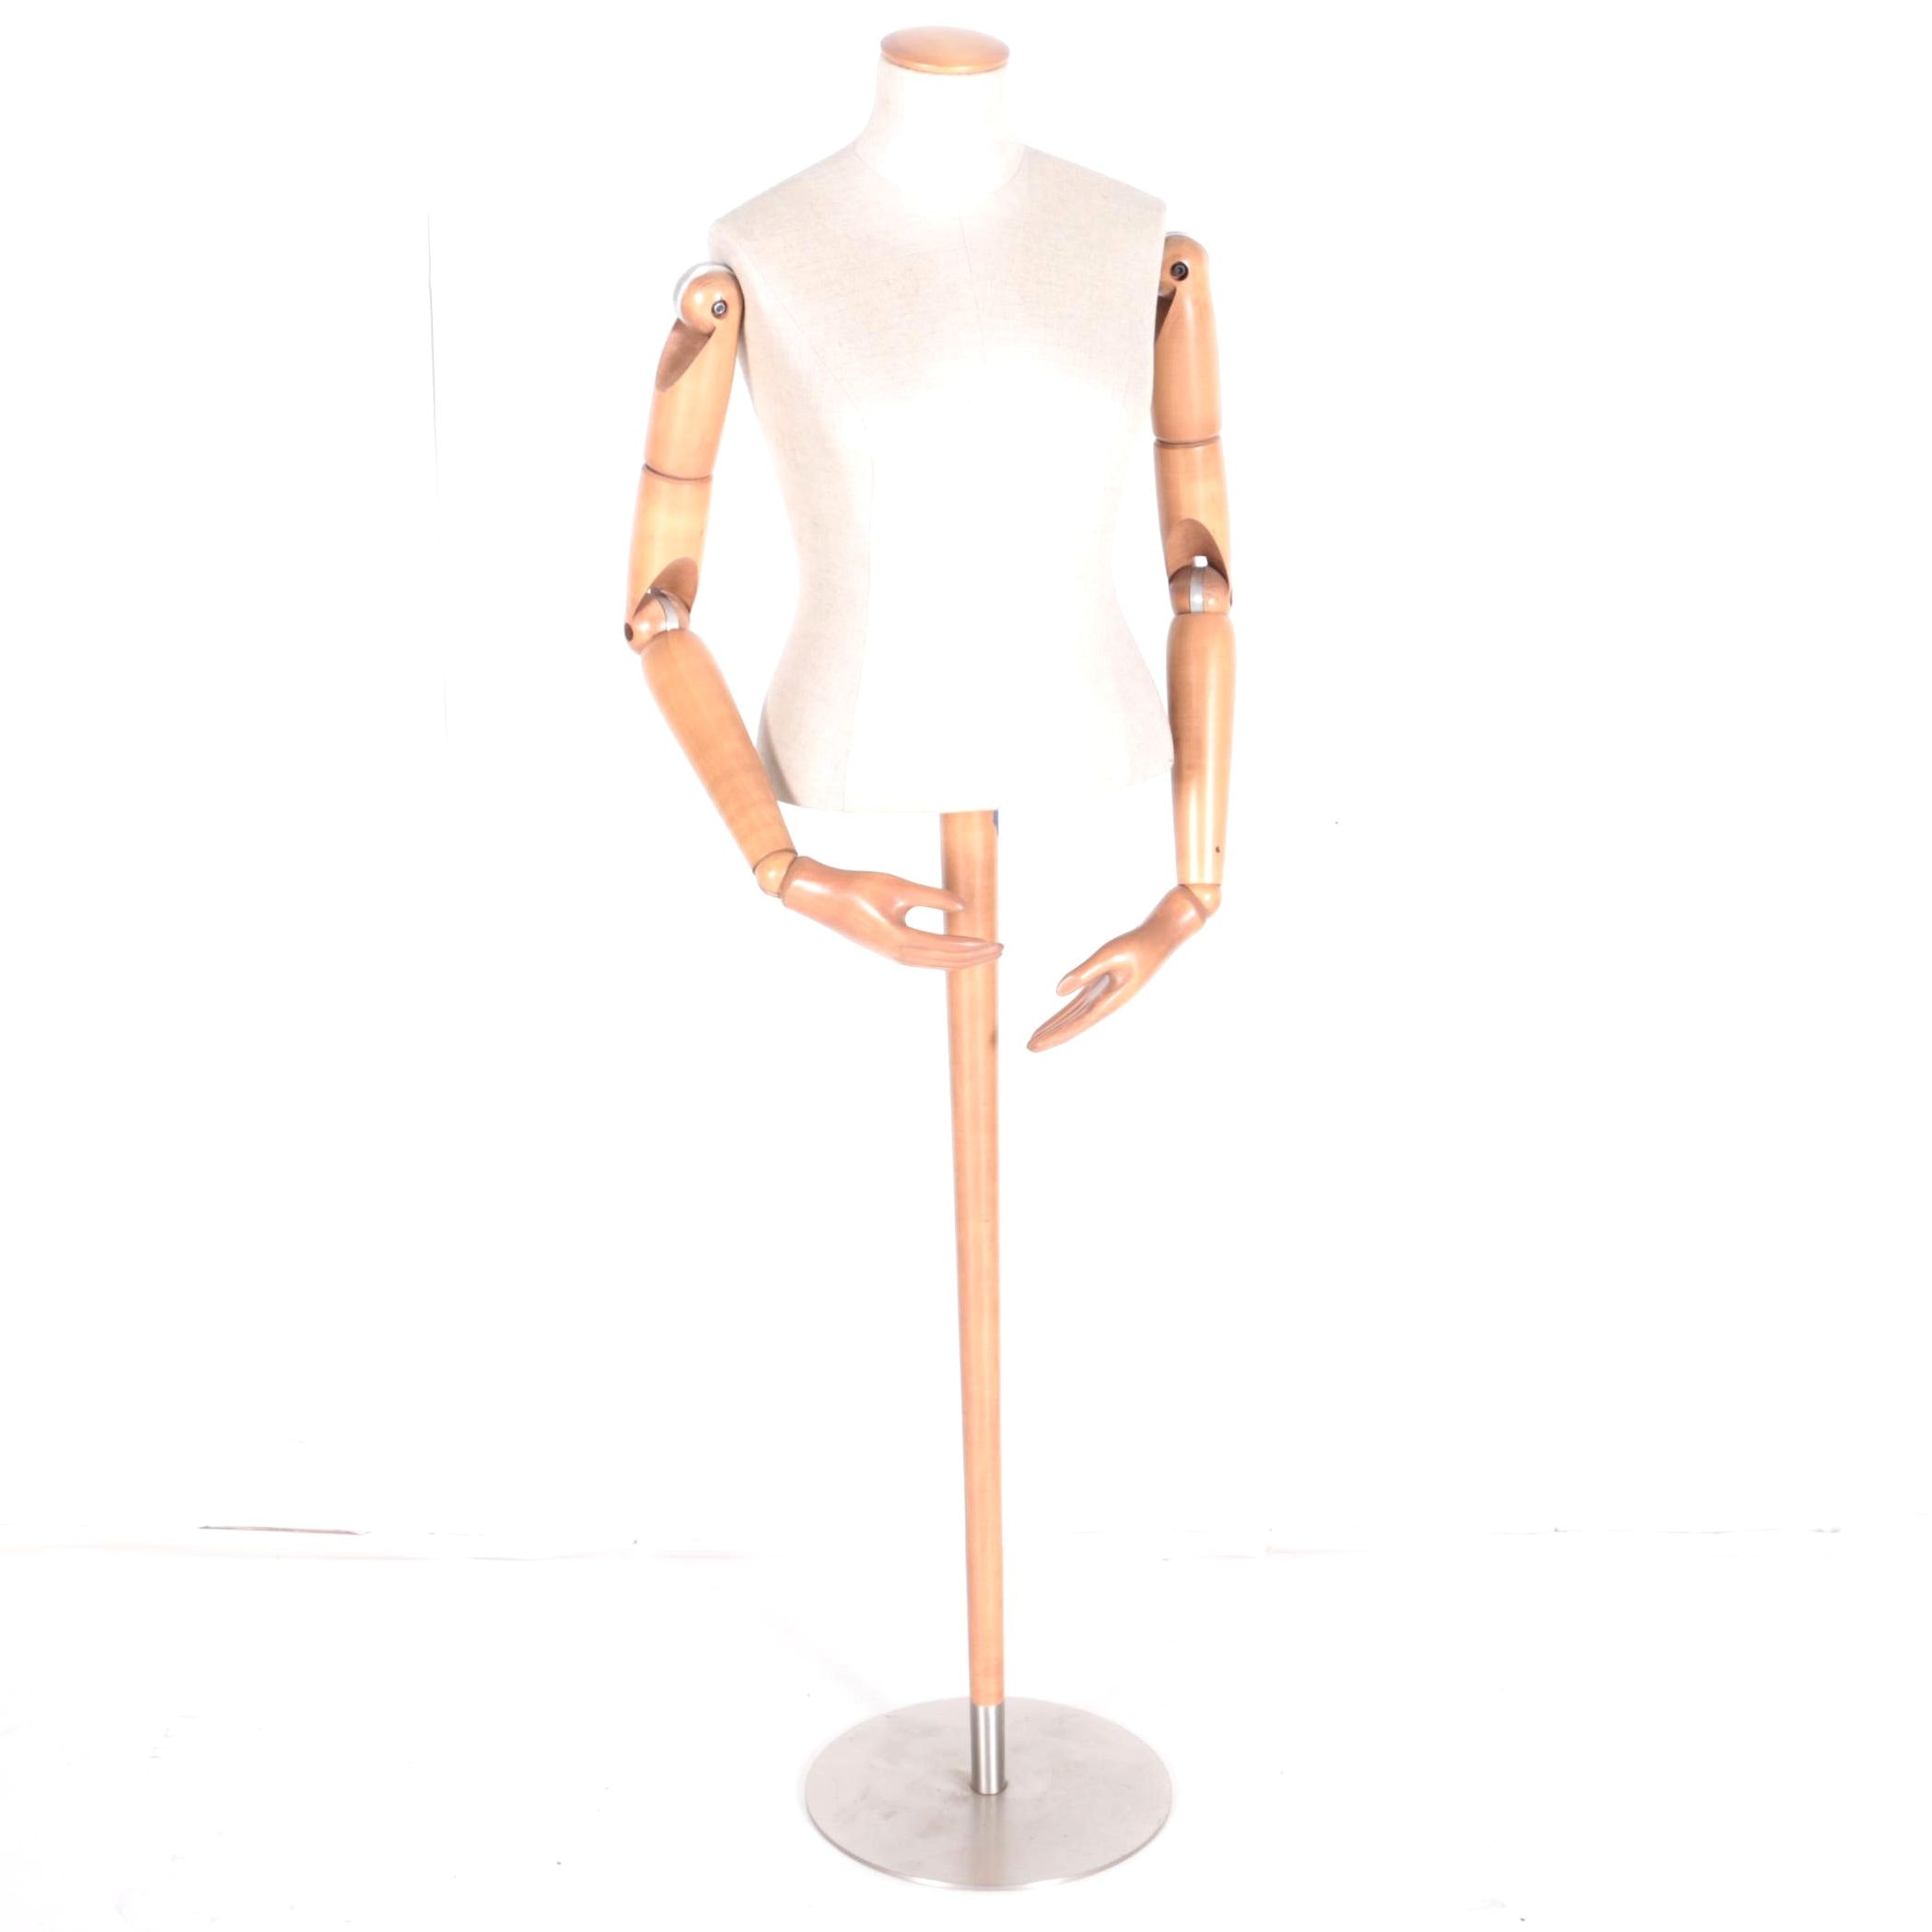 Cloth Mannequin with Wooden Adjustable Arms